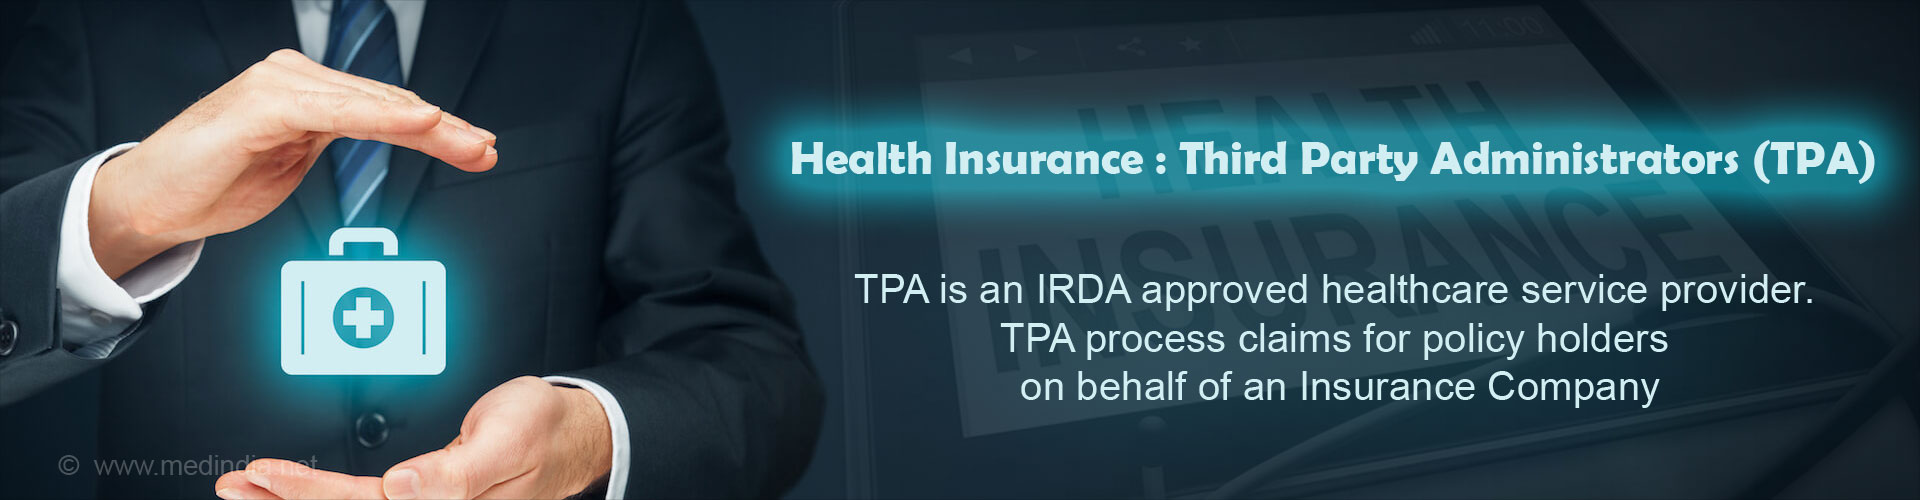 Health Insurance: Learn About Third Party Administrators (TPA)